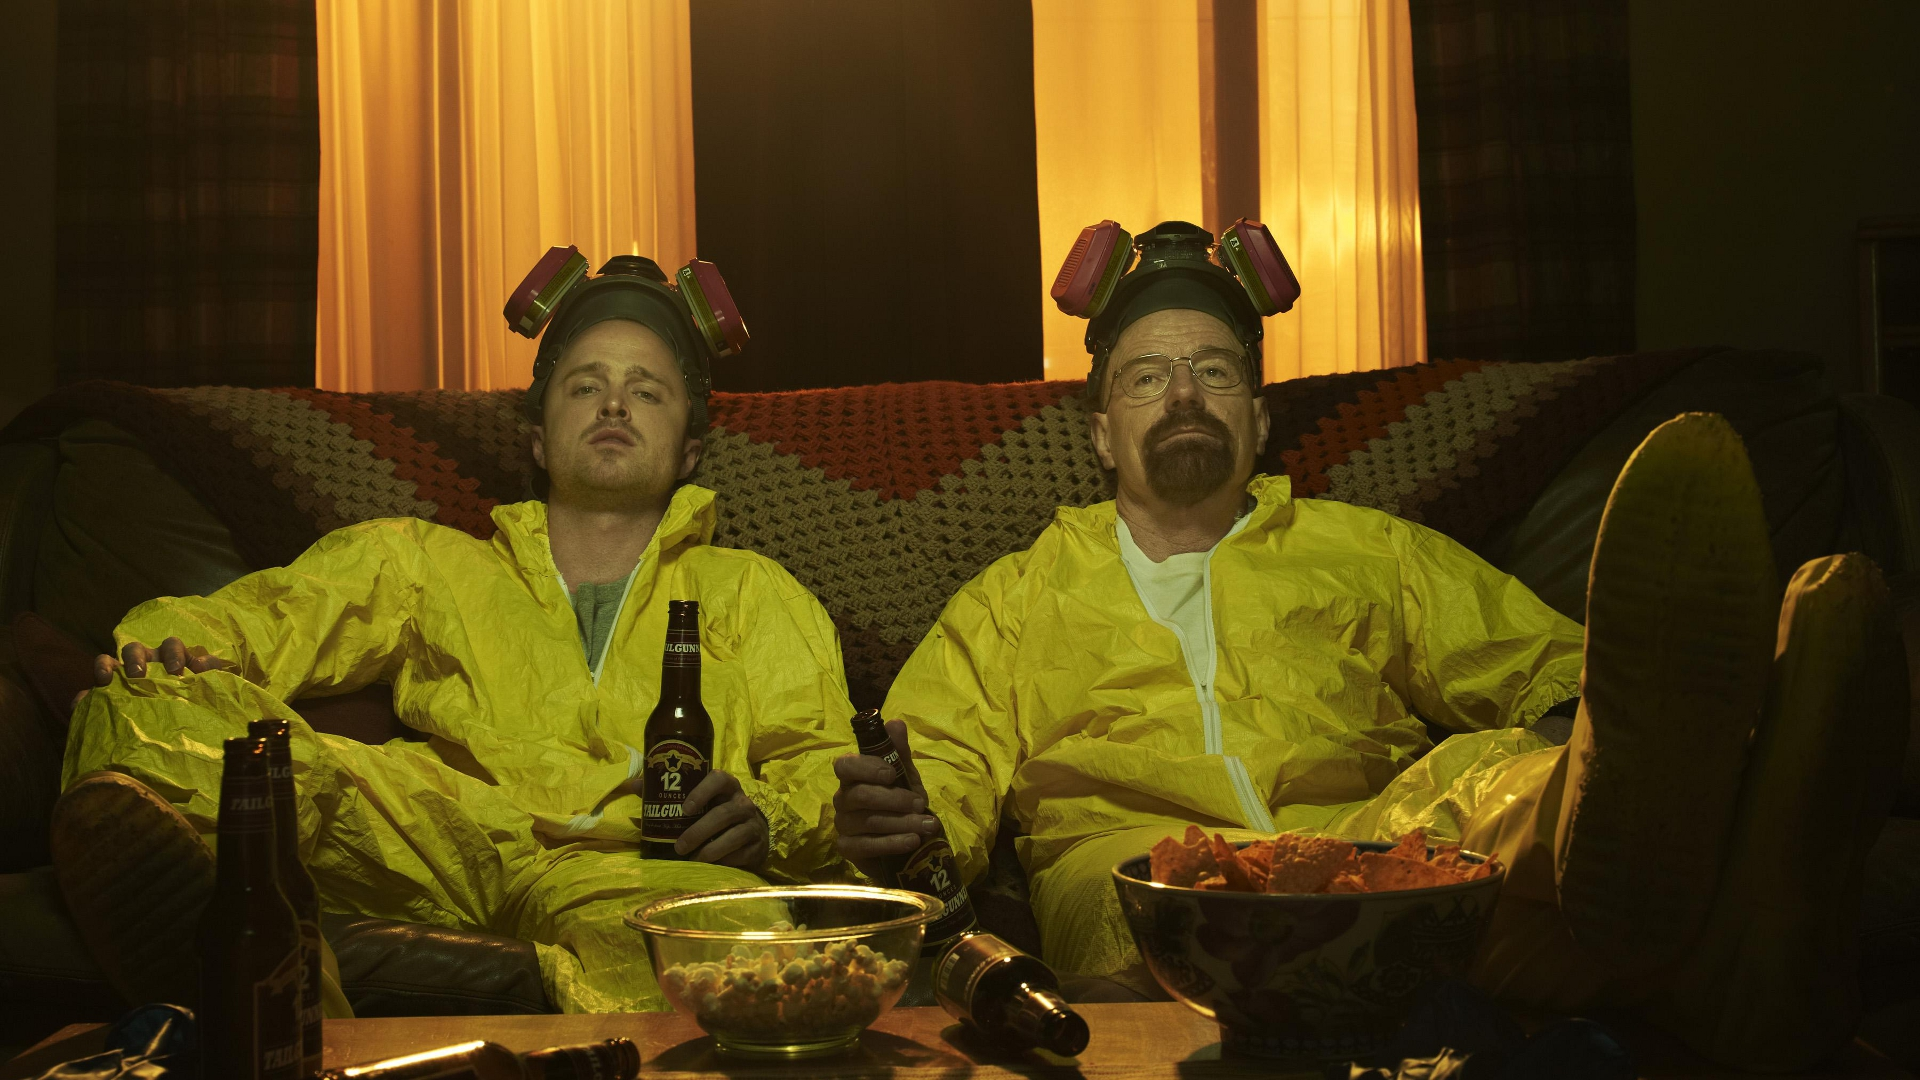 Breaking Bad wallpaper 24